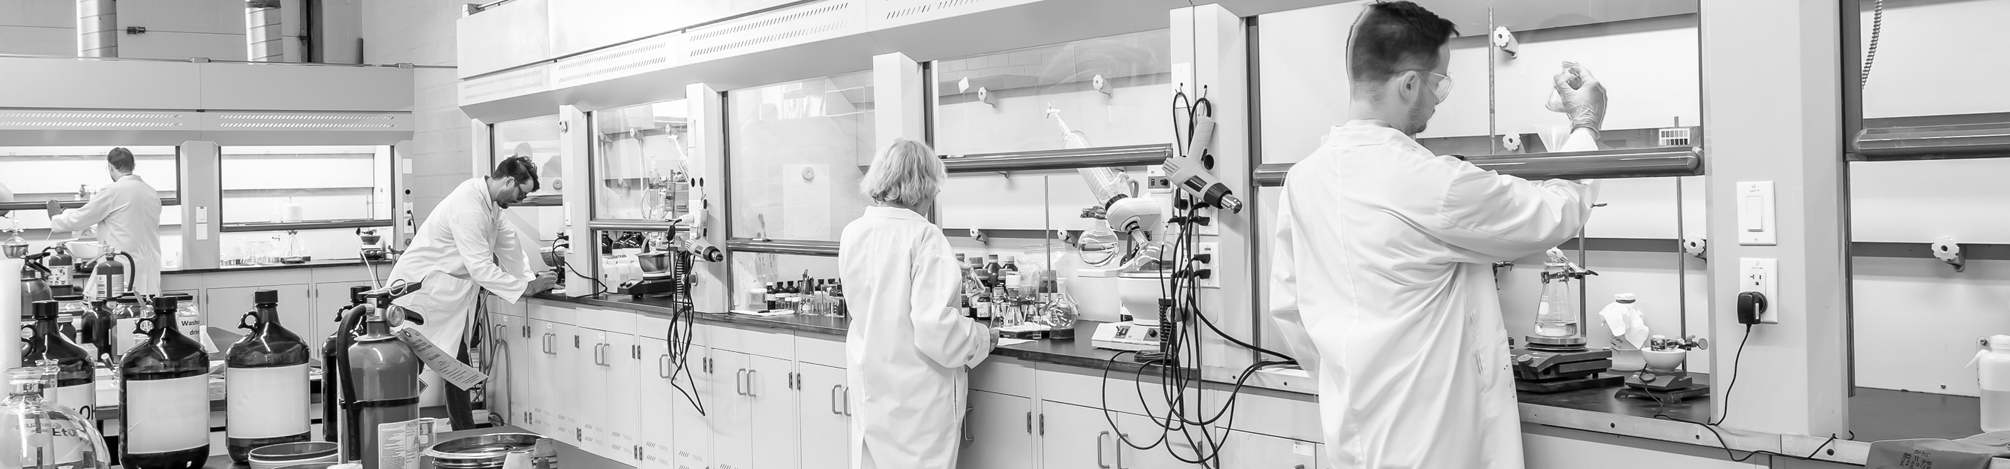 Synthesis laboratory with eight fume hoods and four chemists using equipment in the hoods.